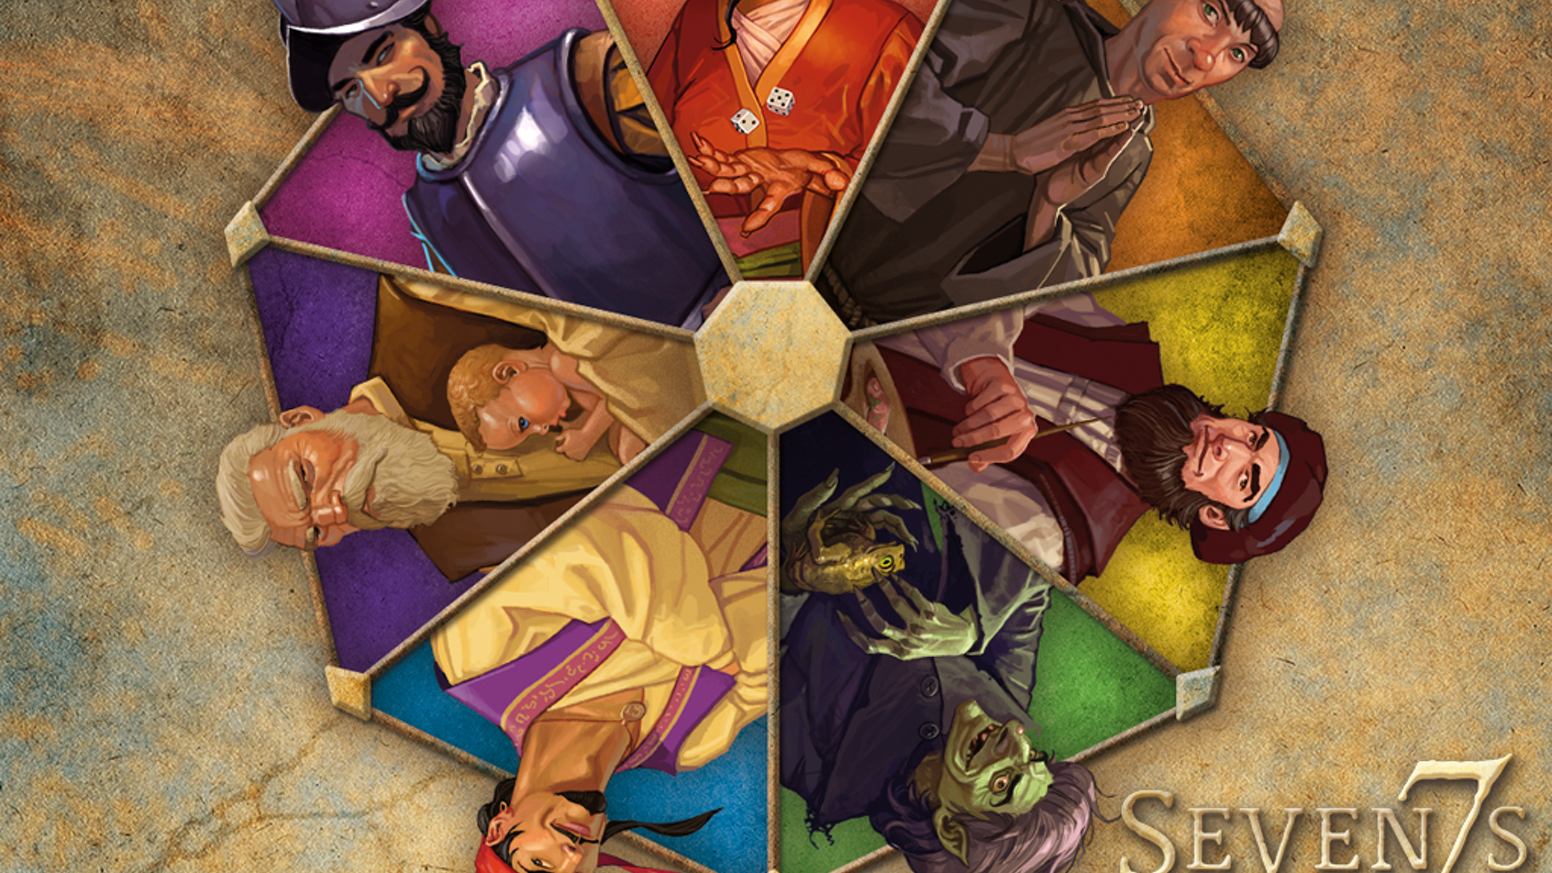 Seven7s allows players to wield the powers of 7 of the most famous 7's in history in a quick, fun, new card game by Jason Tagmire .